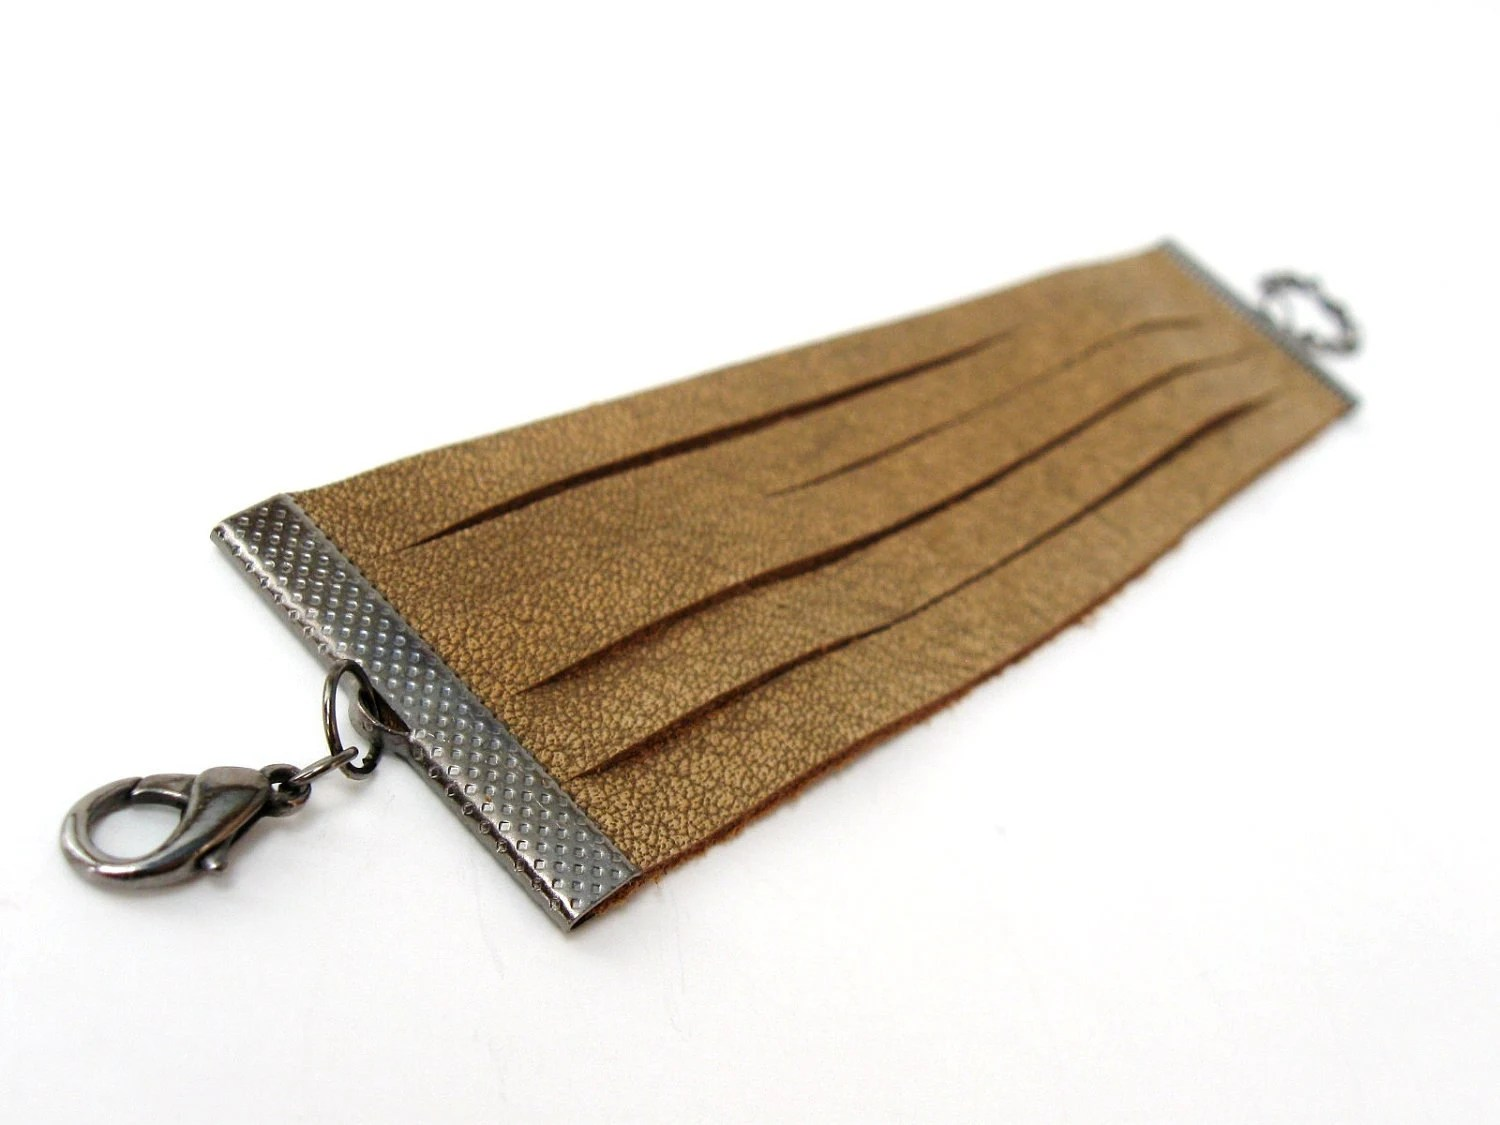 Tan Brown Leather Fashion Cuff Bracelet - with adjustable gunmetal chain - Eco friendly repurposed leather - AnnyMay